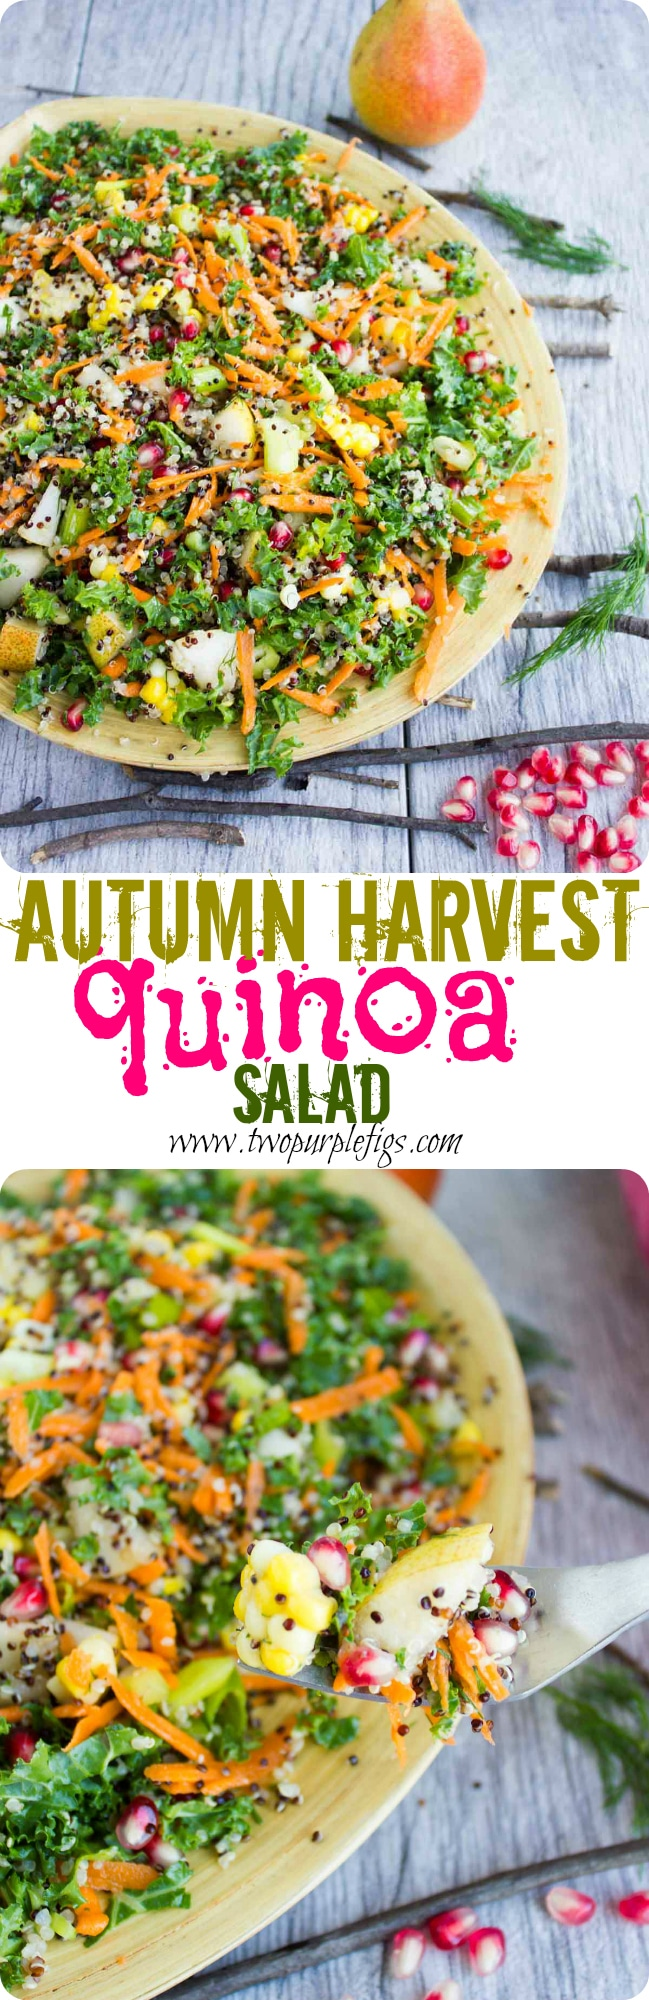 This Quinoa Harvest Salad is a wonderfully autumnal and incredibly healthy vegan dish that includes delicious seasonal vegetables like corn, carrots, pears and pomegranate as well as superfood quinoa and kale! #salad, #vegan, #quinoa, #fall, #healthy, #dressing, #easy, #cleaneating, #realfood, #Thanksgiving